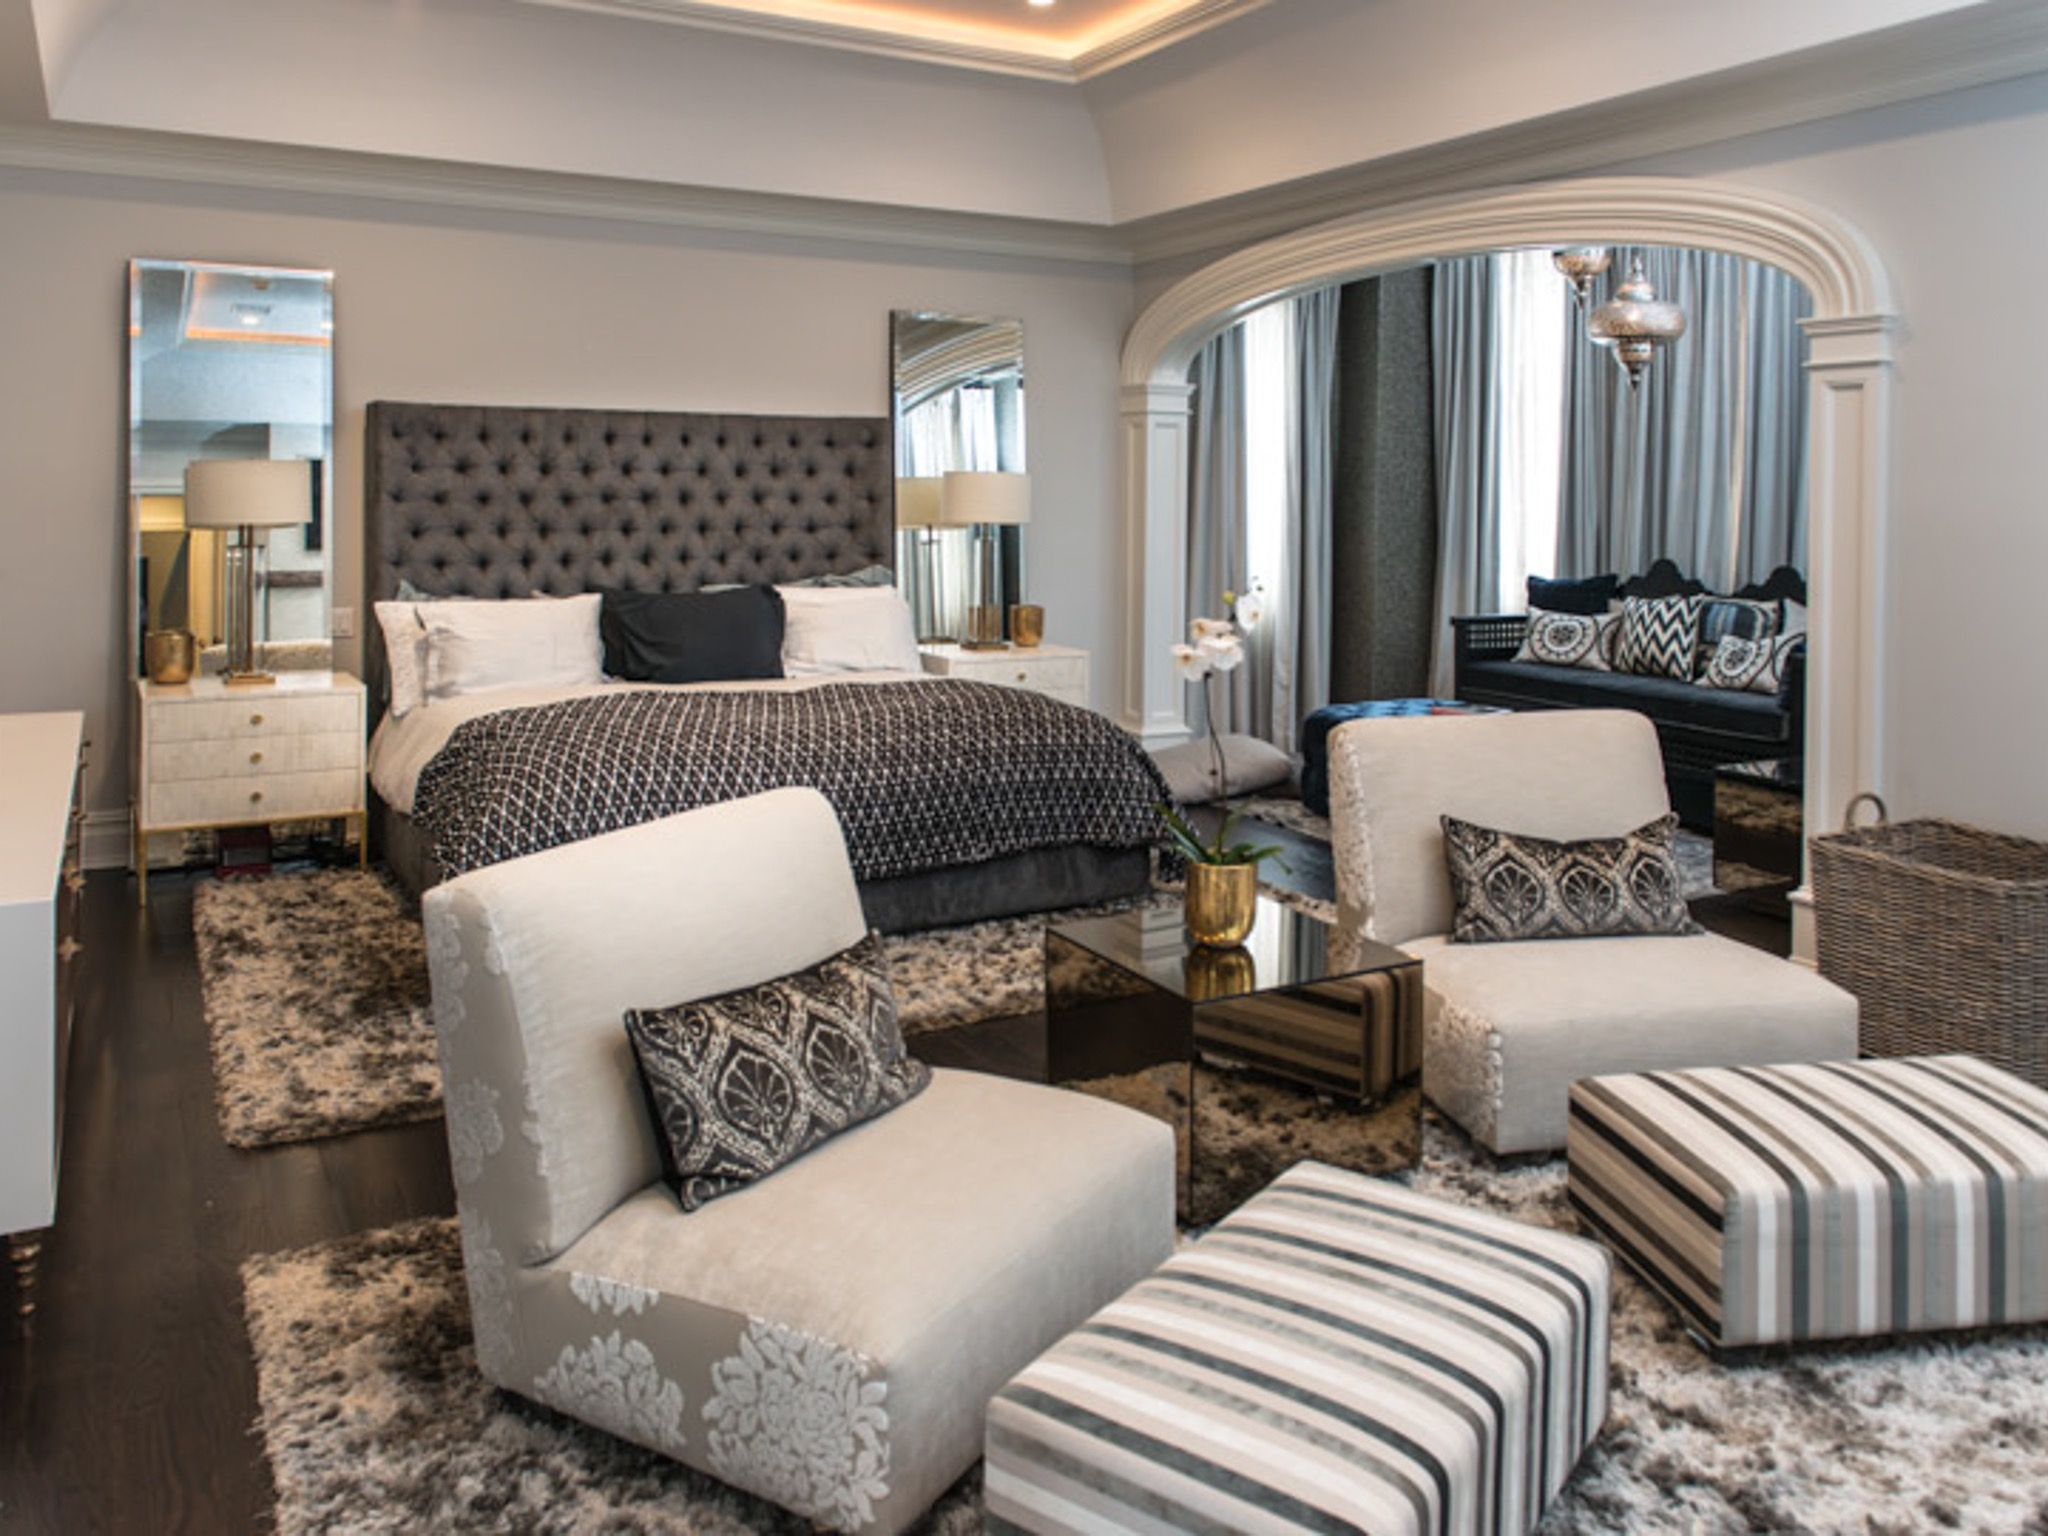 Luxury Master Parents Bedroom Interior Decor With Sitting Area (Image 19 of 30)